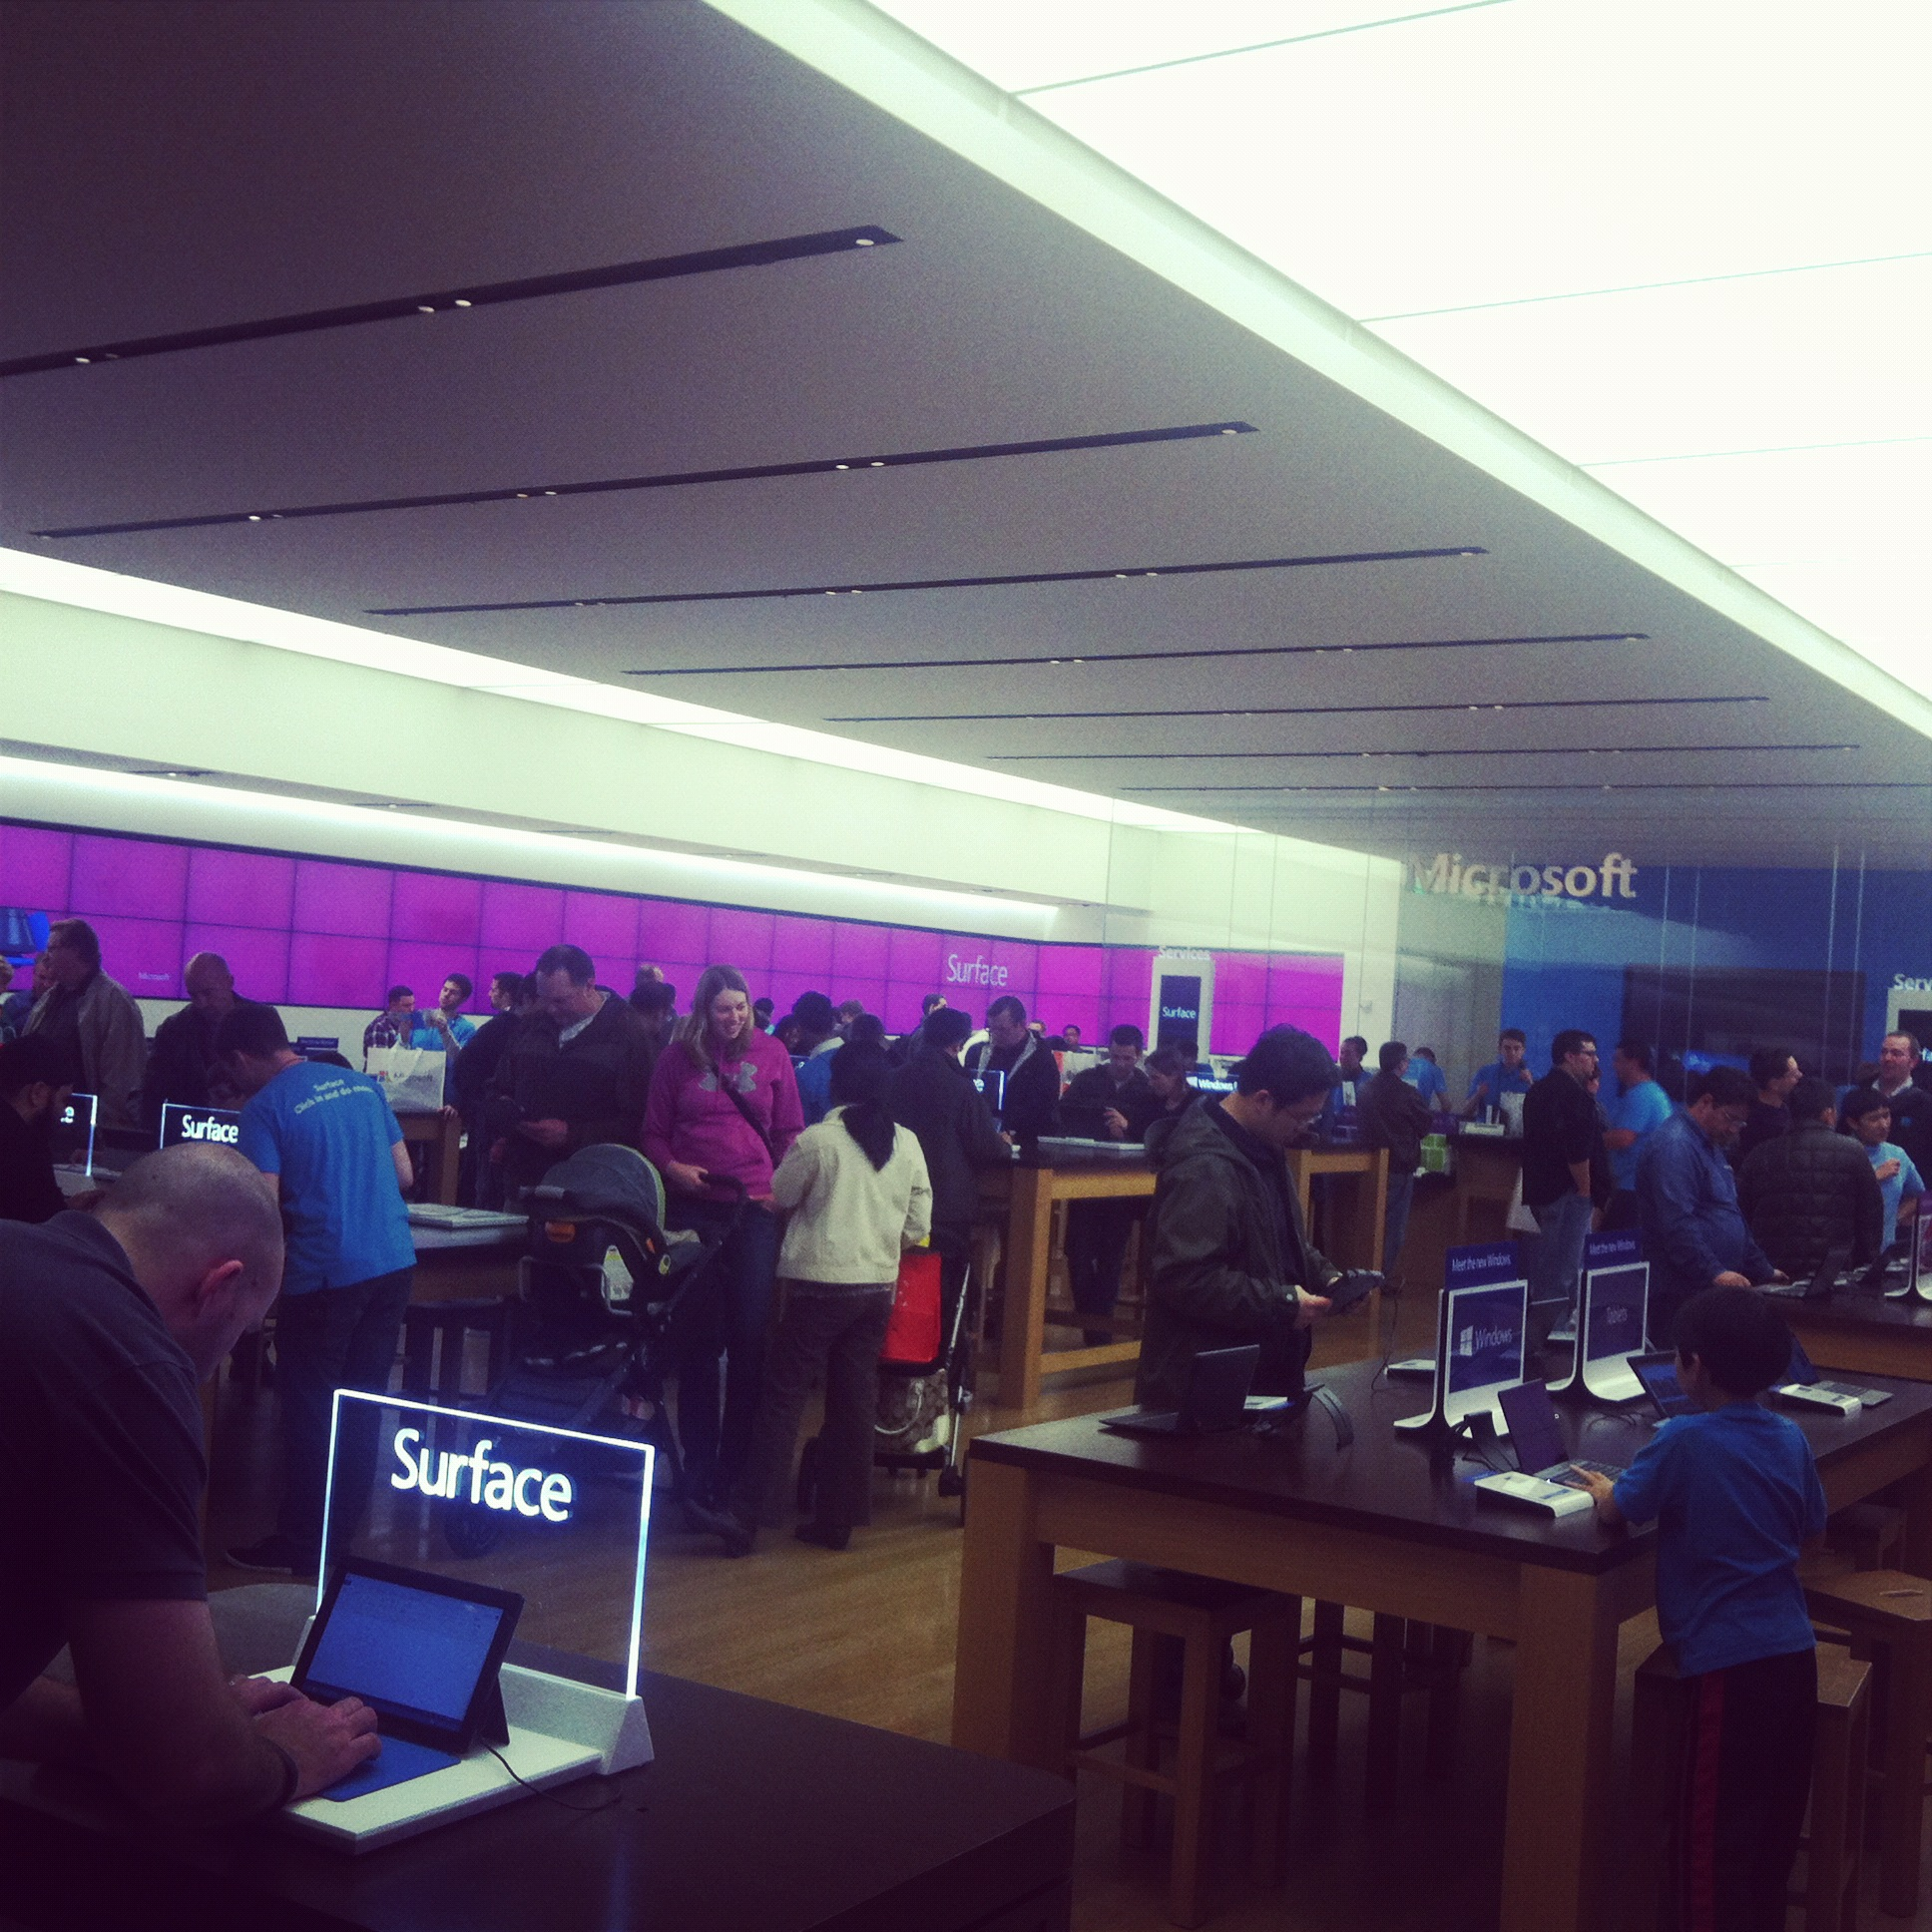 Building 92 microsoft store - Since Microsoft Opened Its Retail Stores